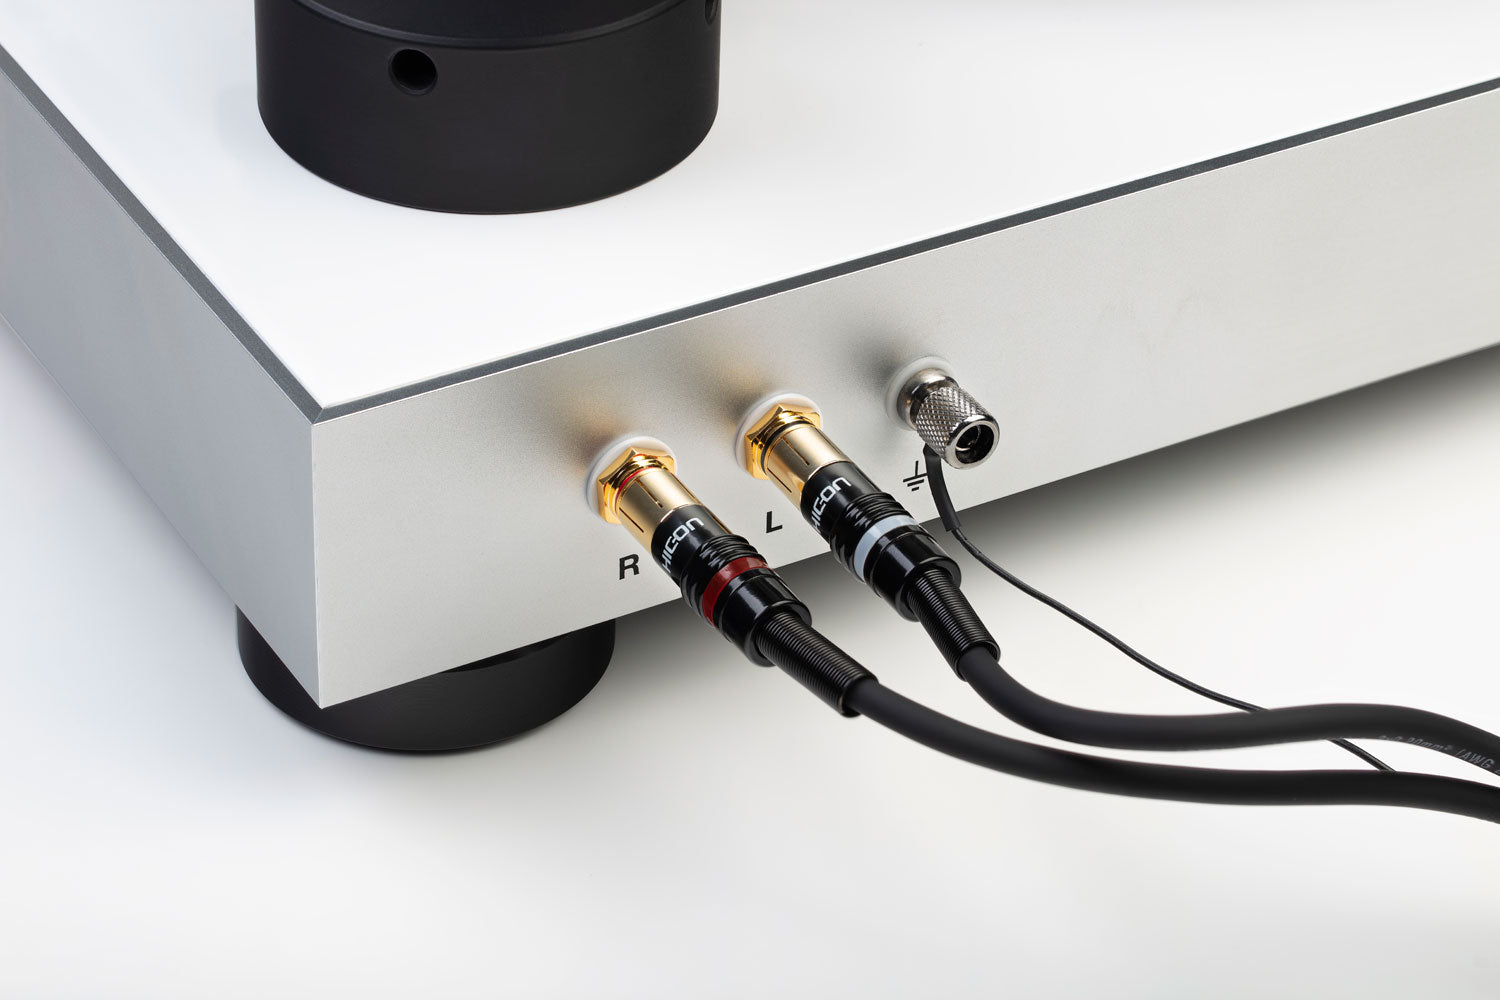 MAG-LEV Audio ML1 - outputs